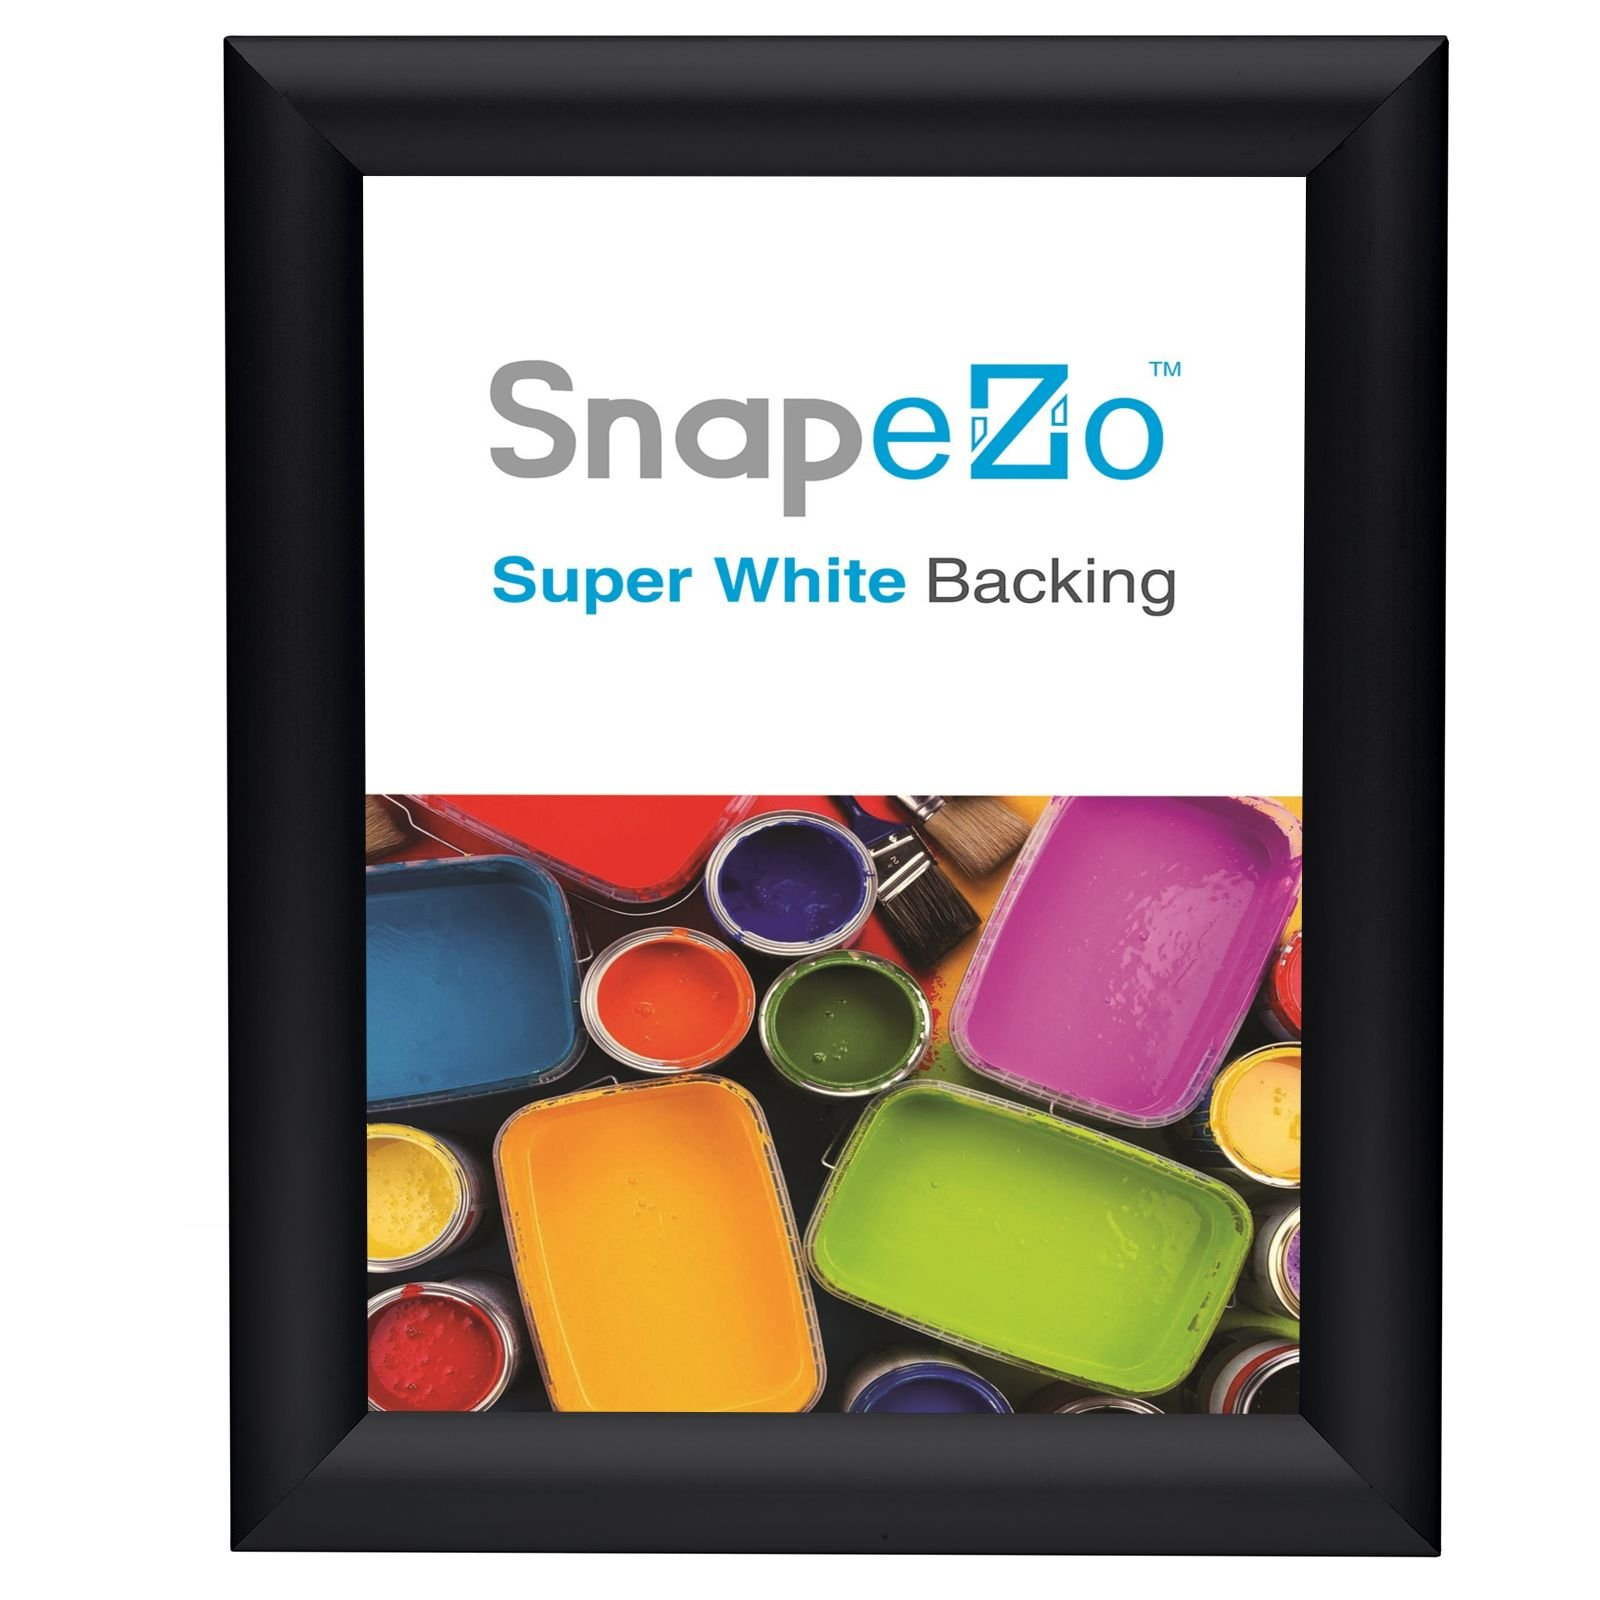 SnapeZo Weather Resistant Black Poster Frame 8.5x11 Inches, 1.38 Inch Outdoor Profile, Outdoor Poster Display Unit by SnapeZo